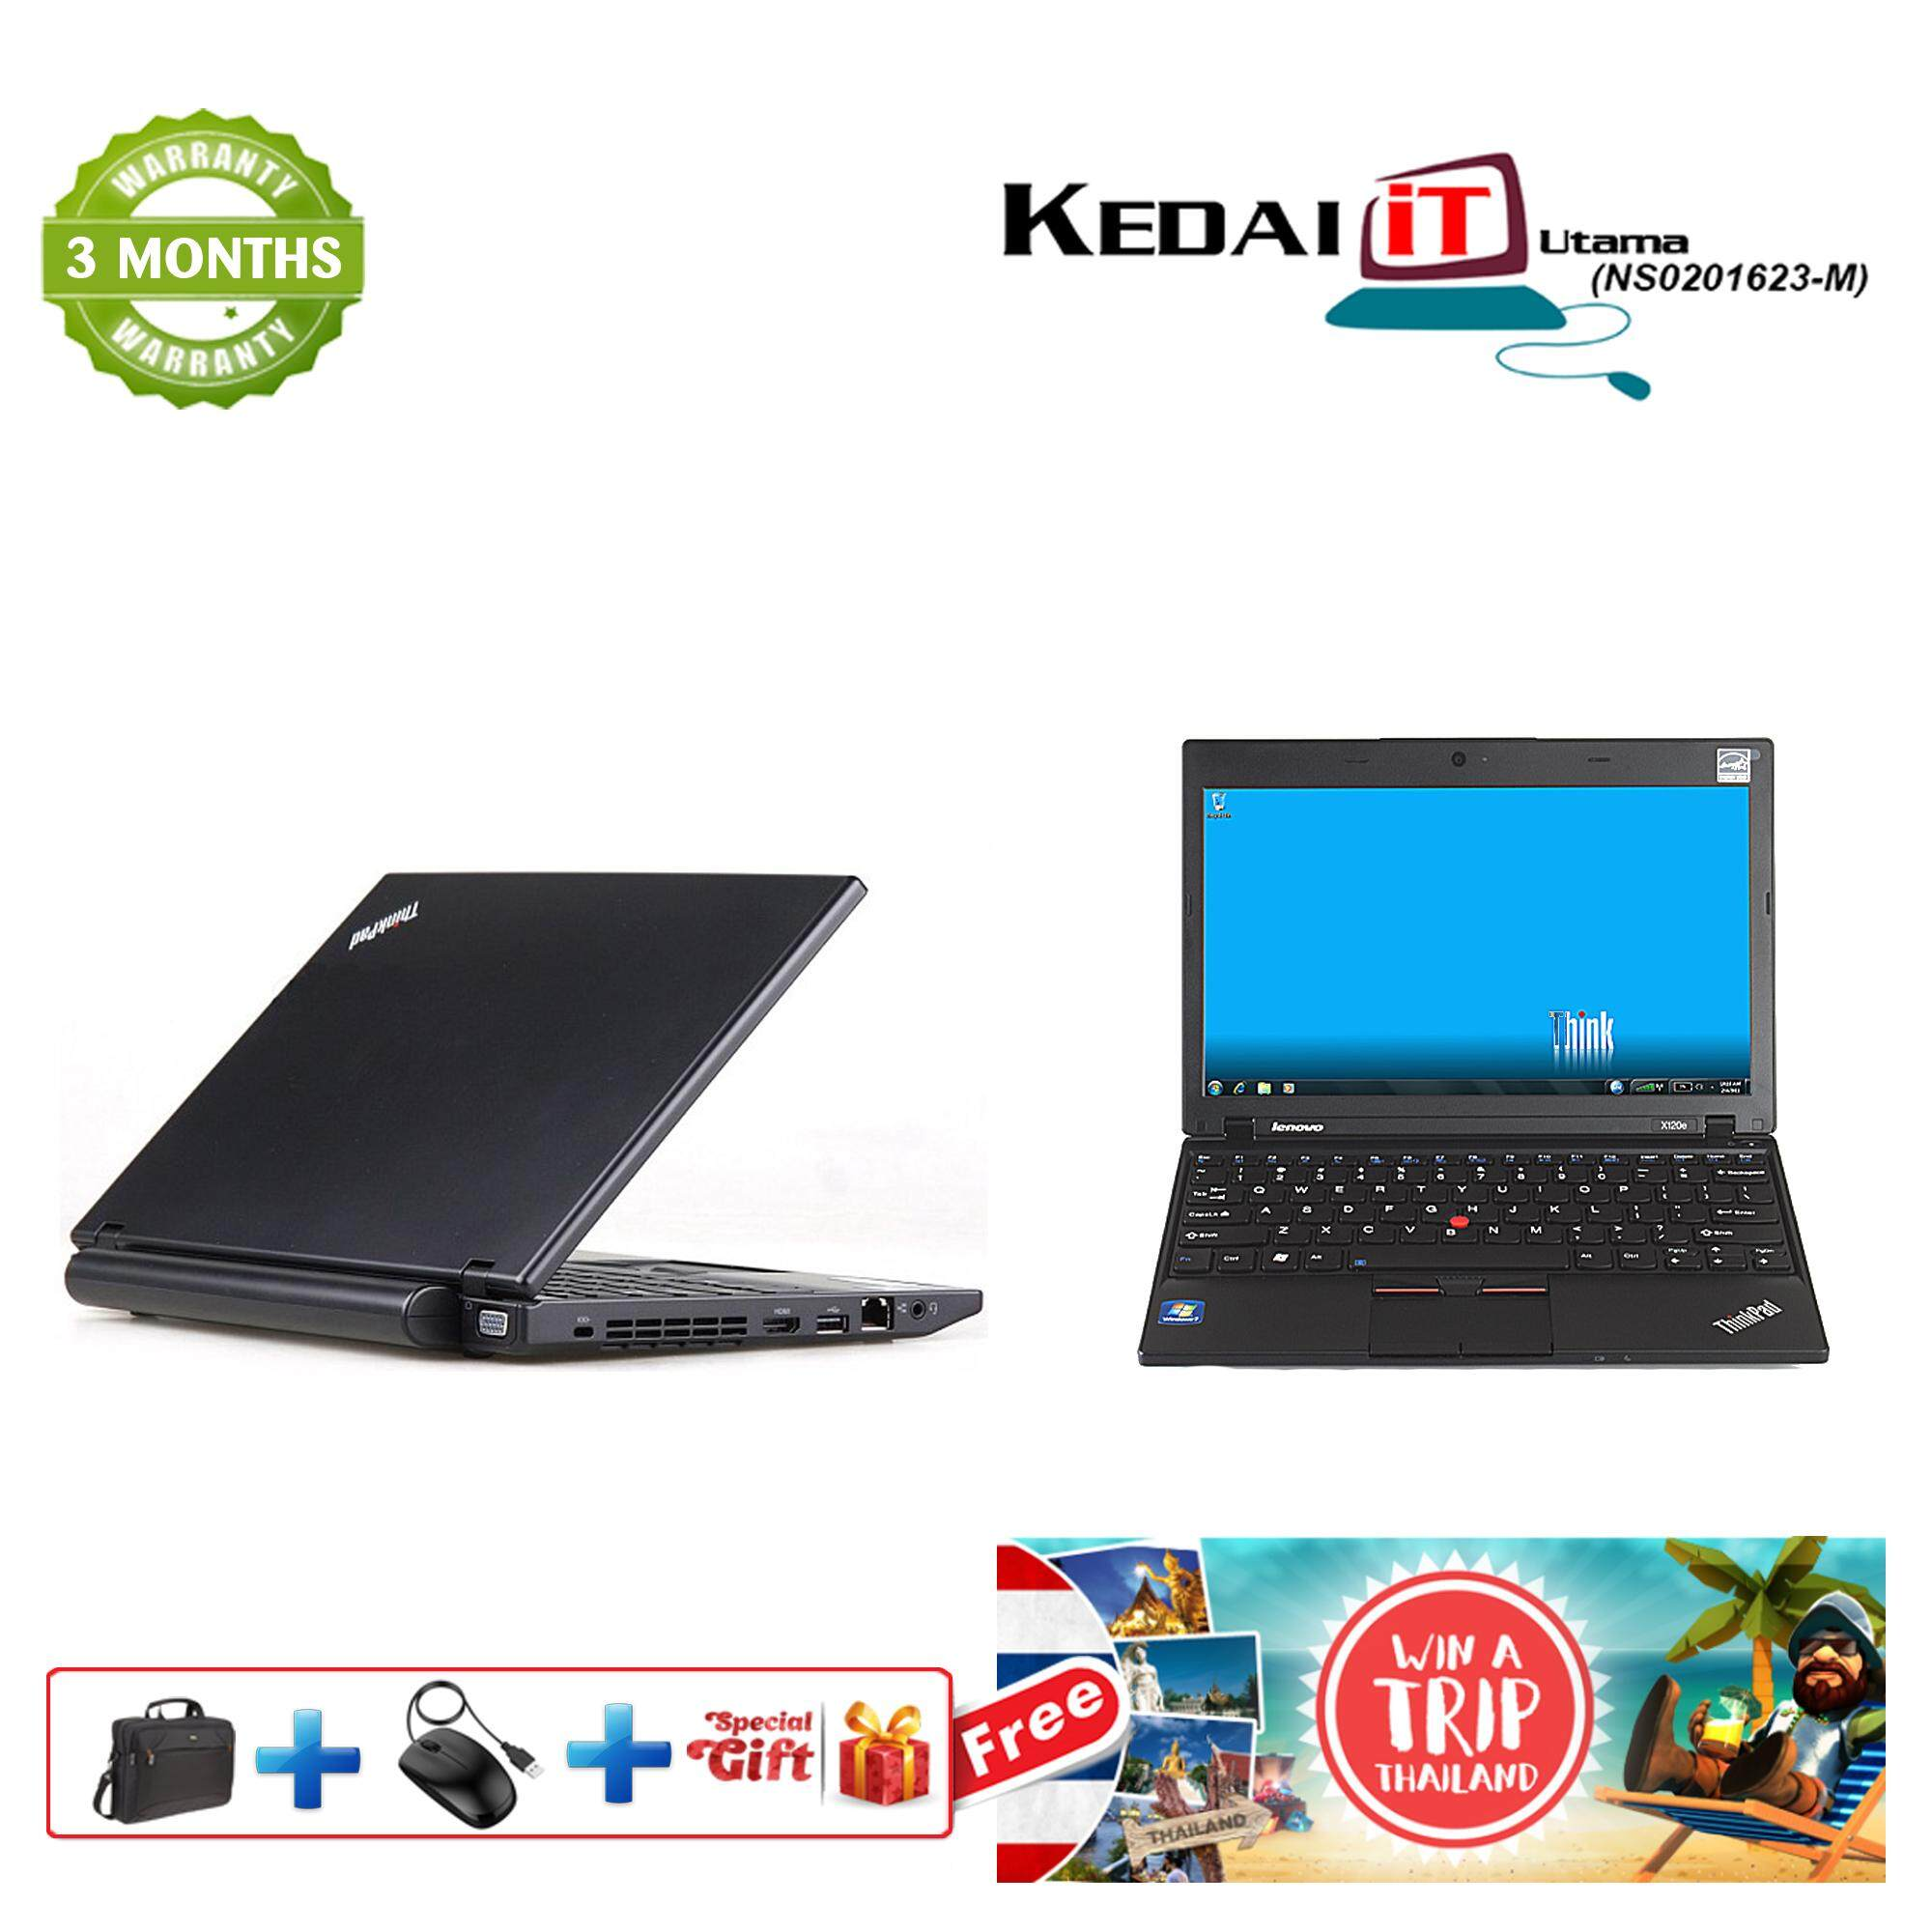 Lenovo X120E - 11.6 Windows 10/Win 7 HDMI, Wifi, WebCam , AMD, 250GB/320GB HDD , 2GB RAM, 3 Months Warranty (Black) Refurb Malaysia